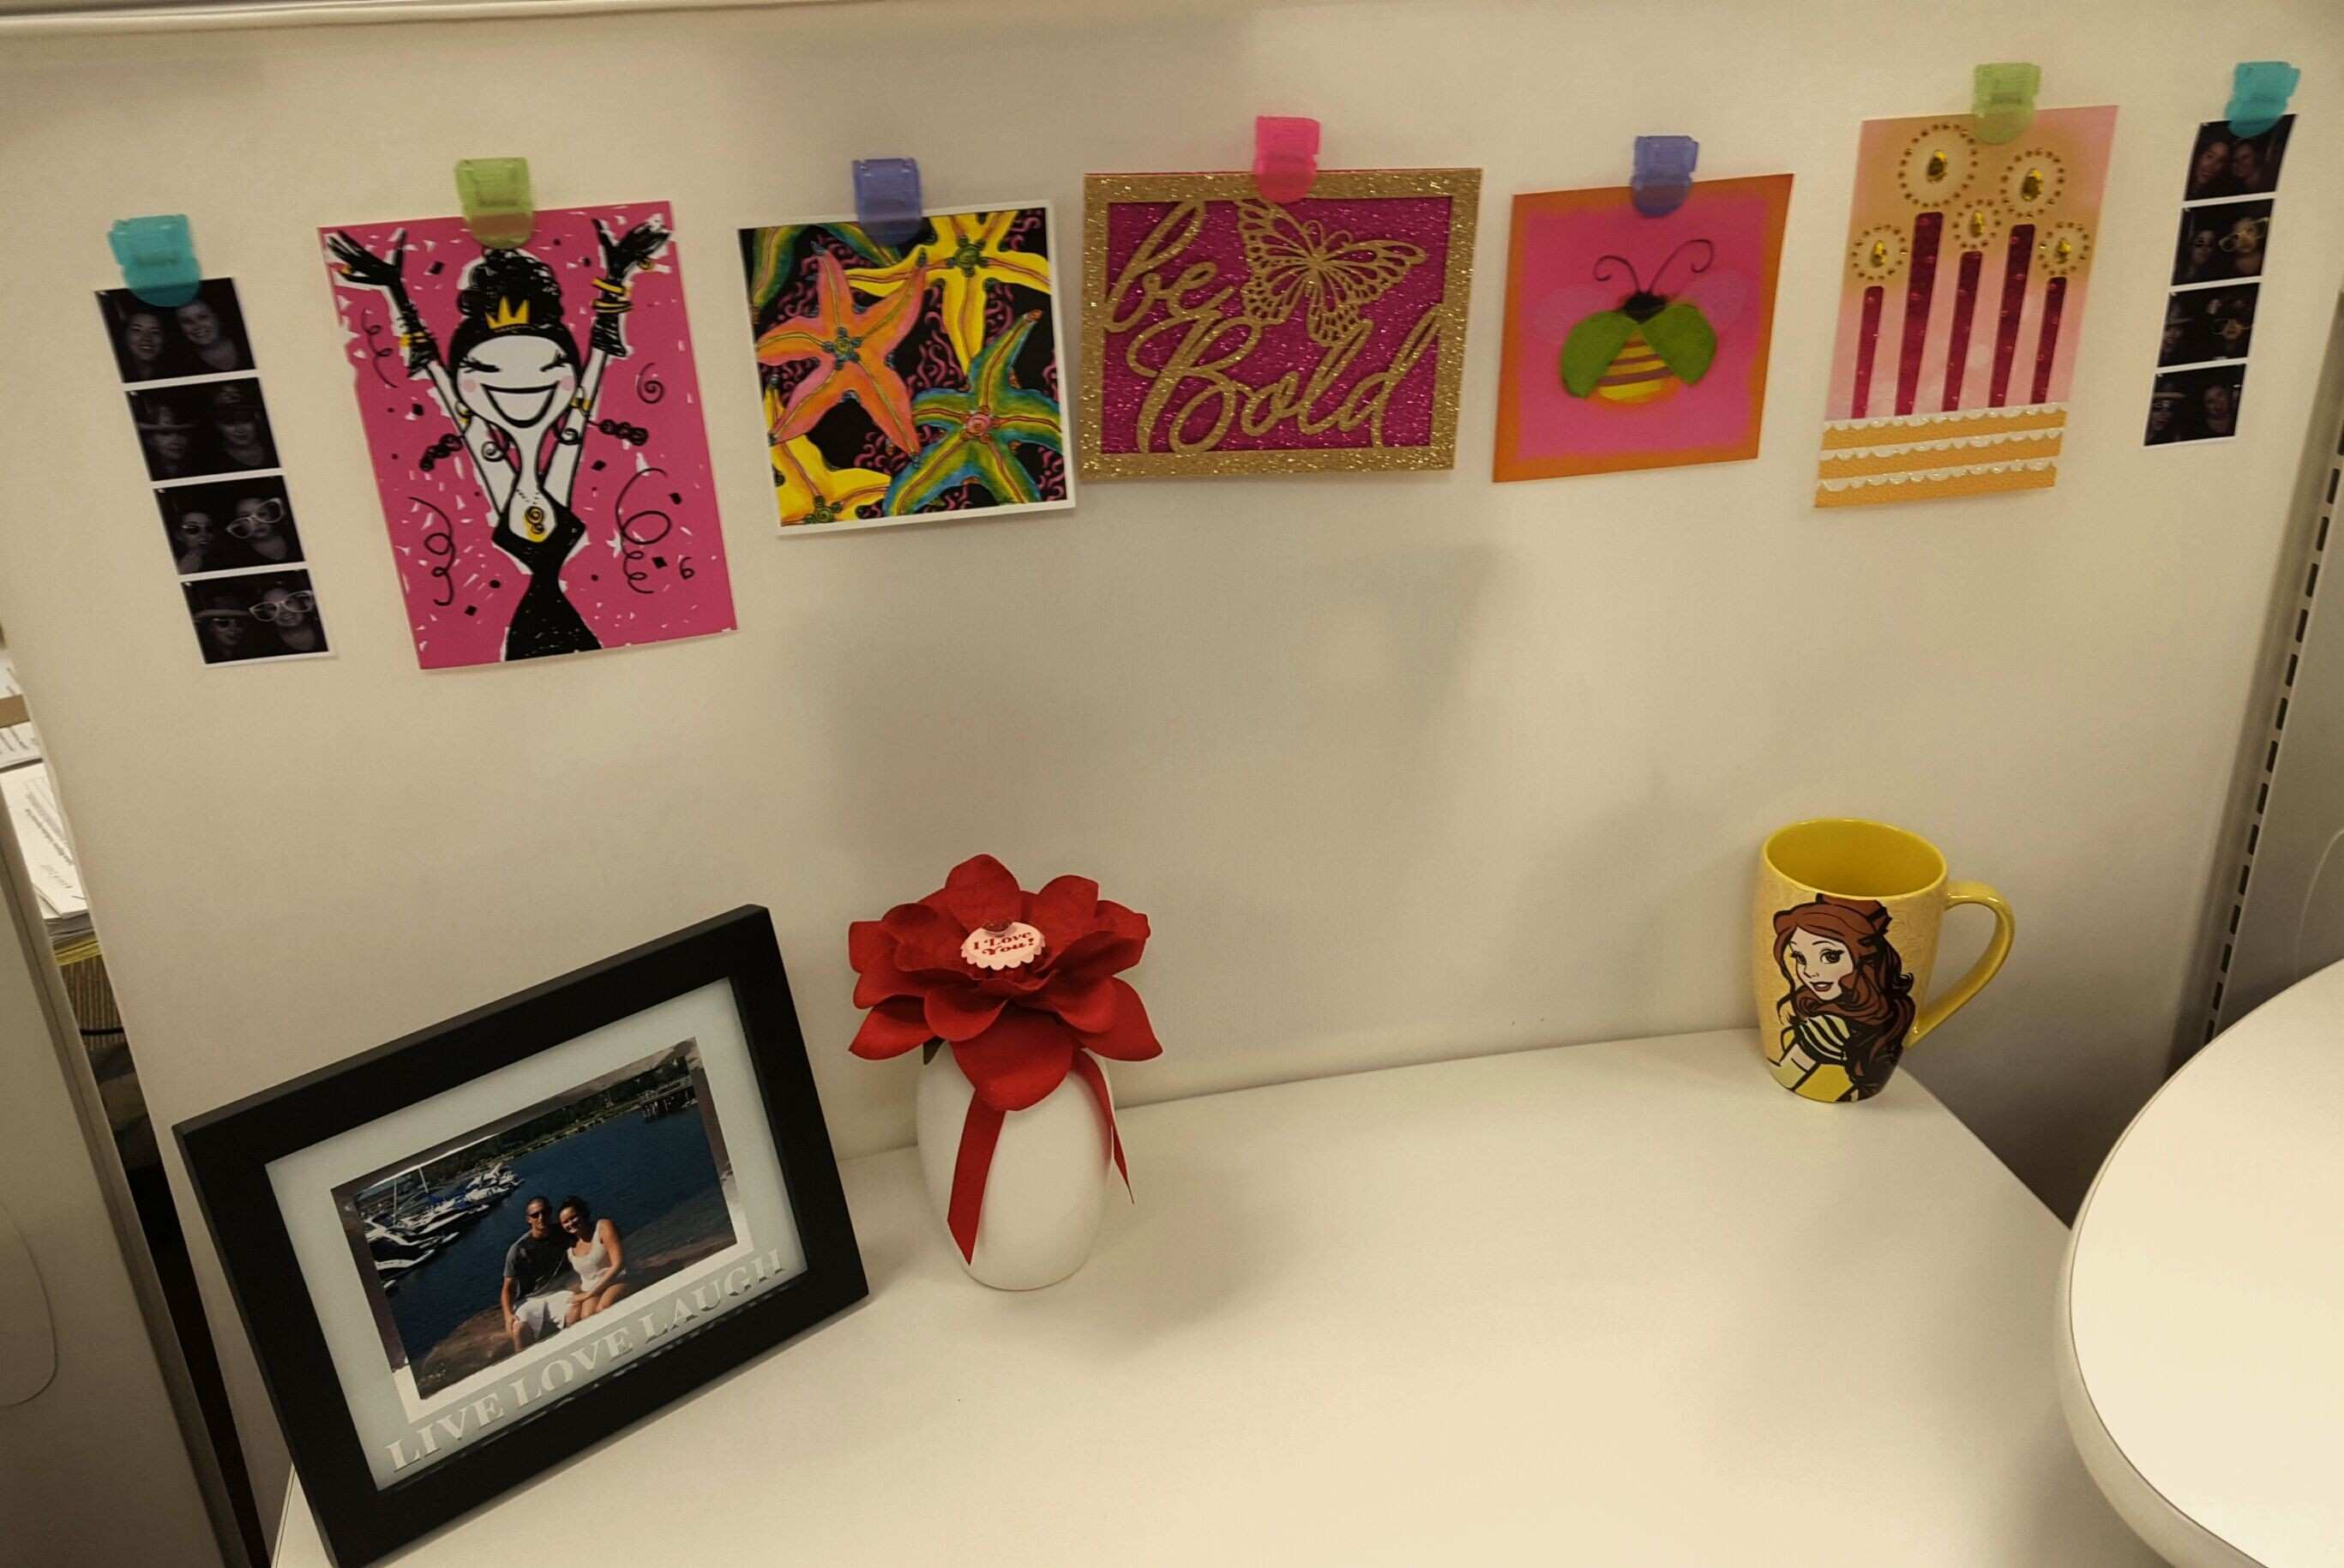 Jessica s Cubicle hang cards to help brighten up your cubicle